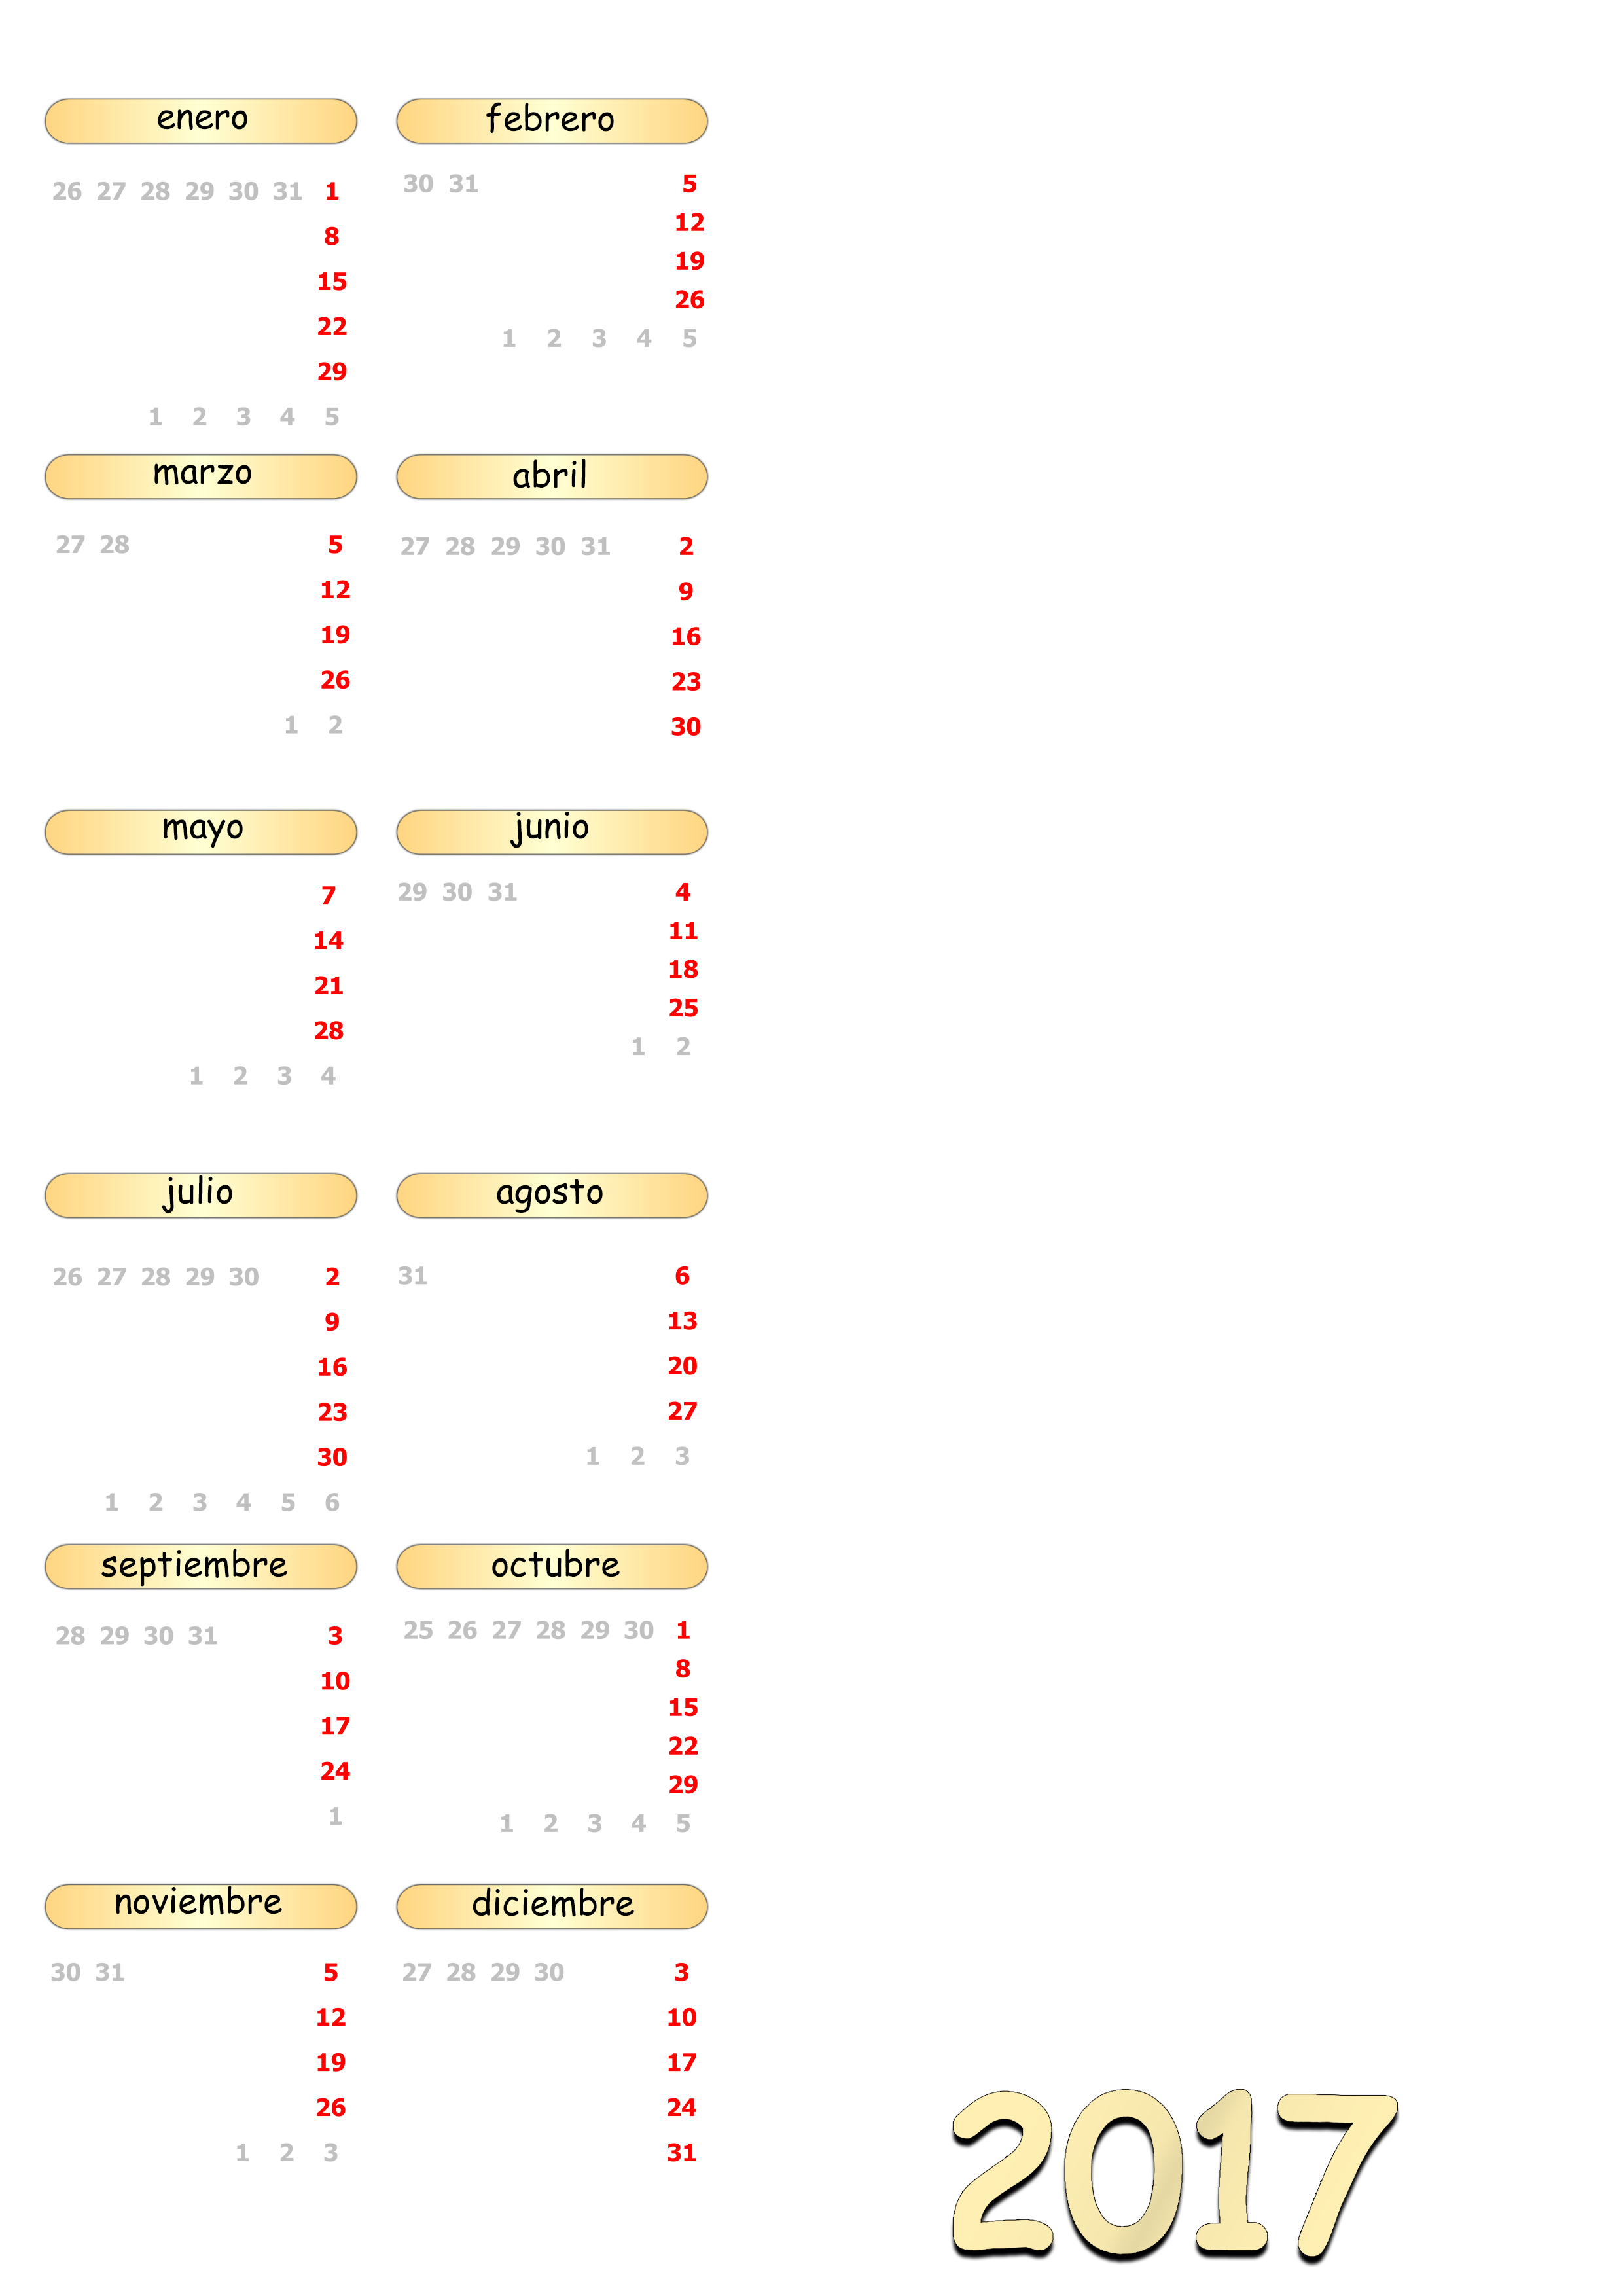 Calendarios 2017 - Plantillas PSD-PNG by AkatsukiKarasu on DeviantArt